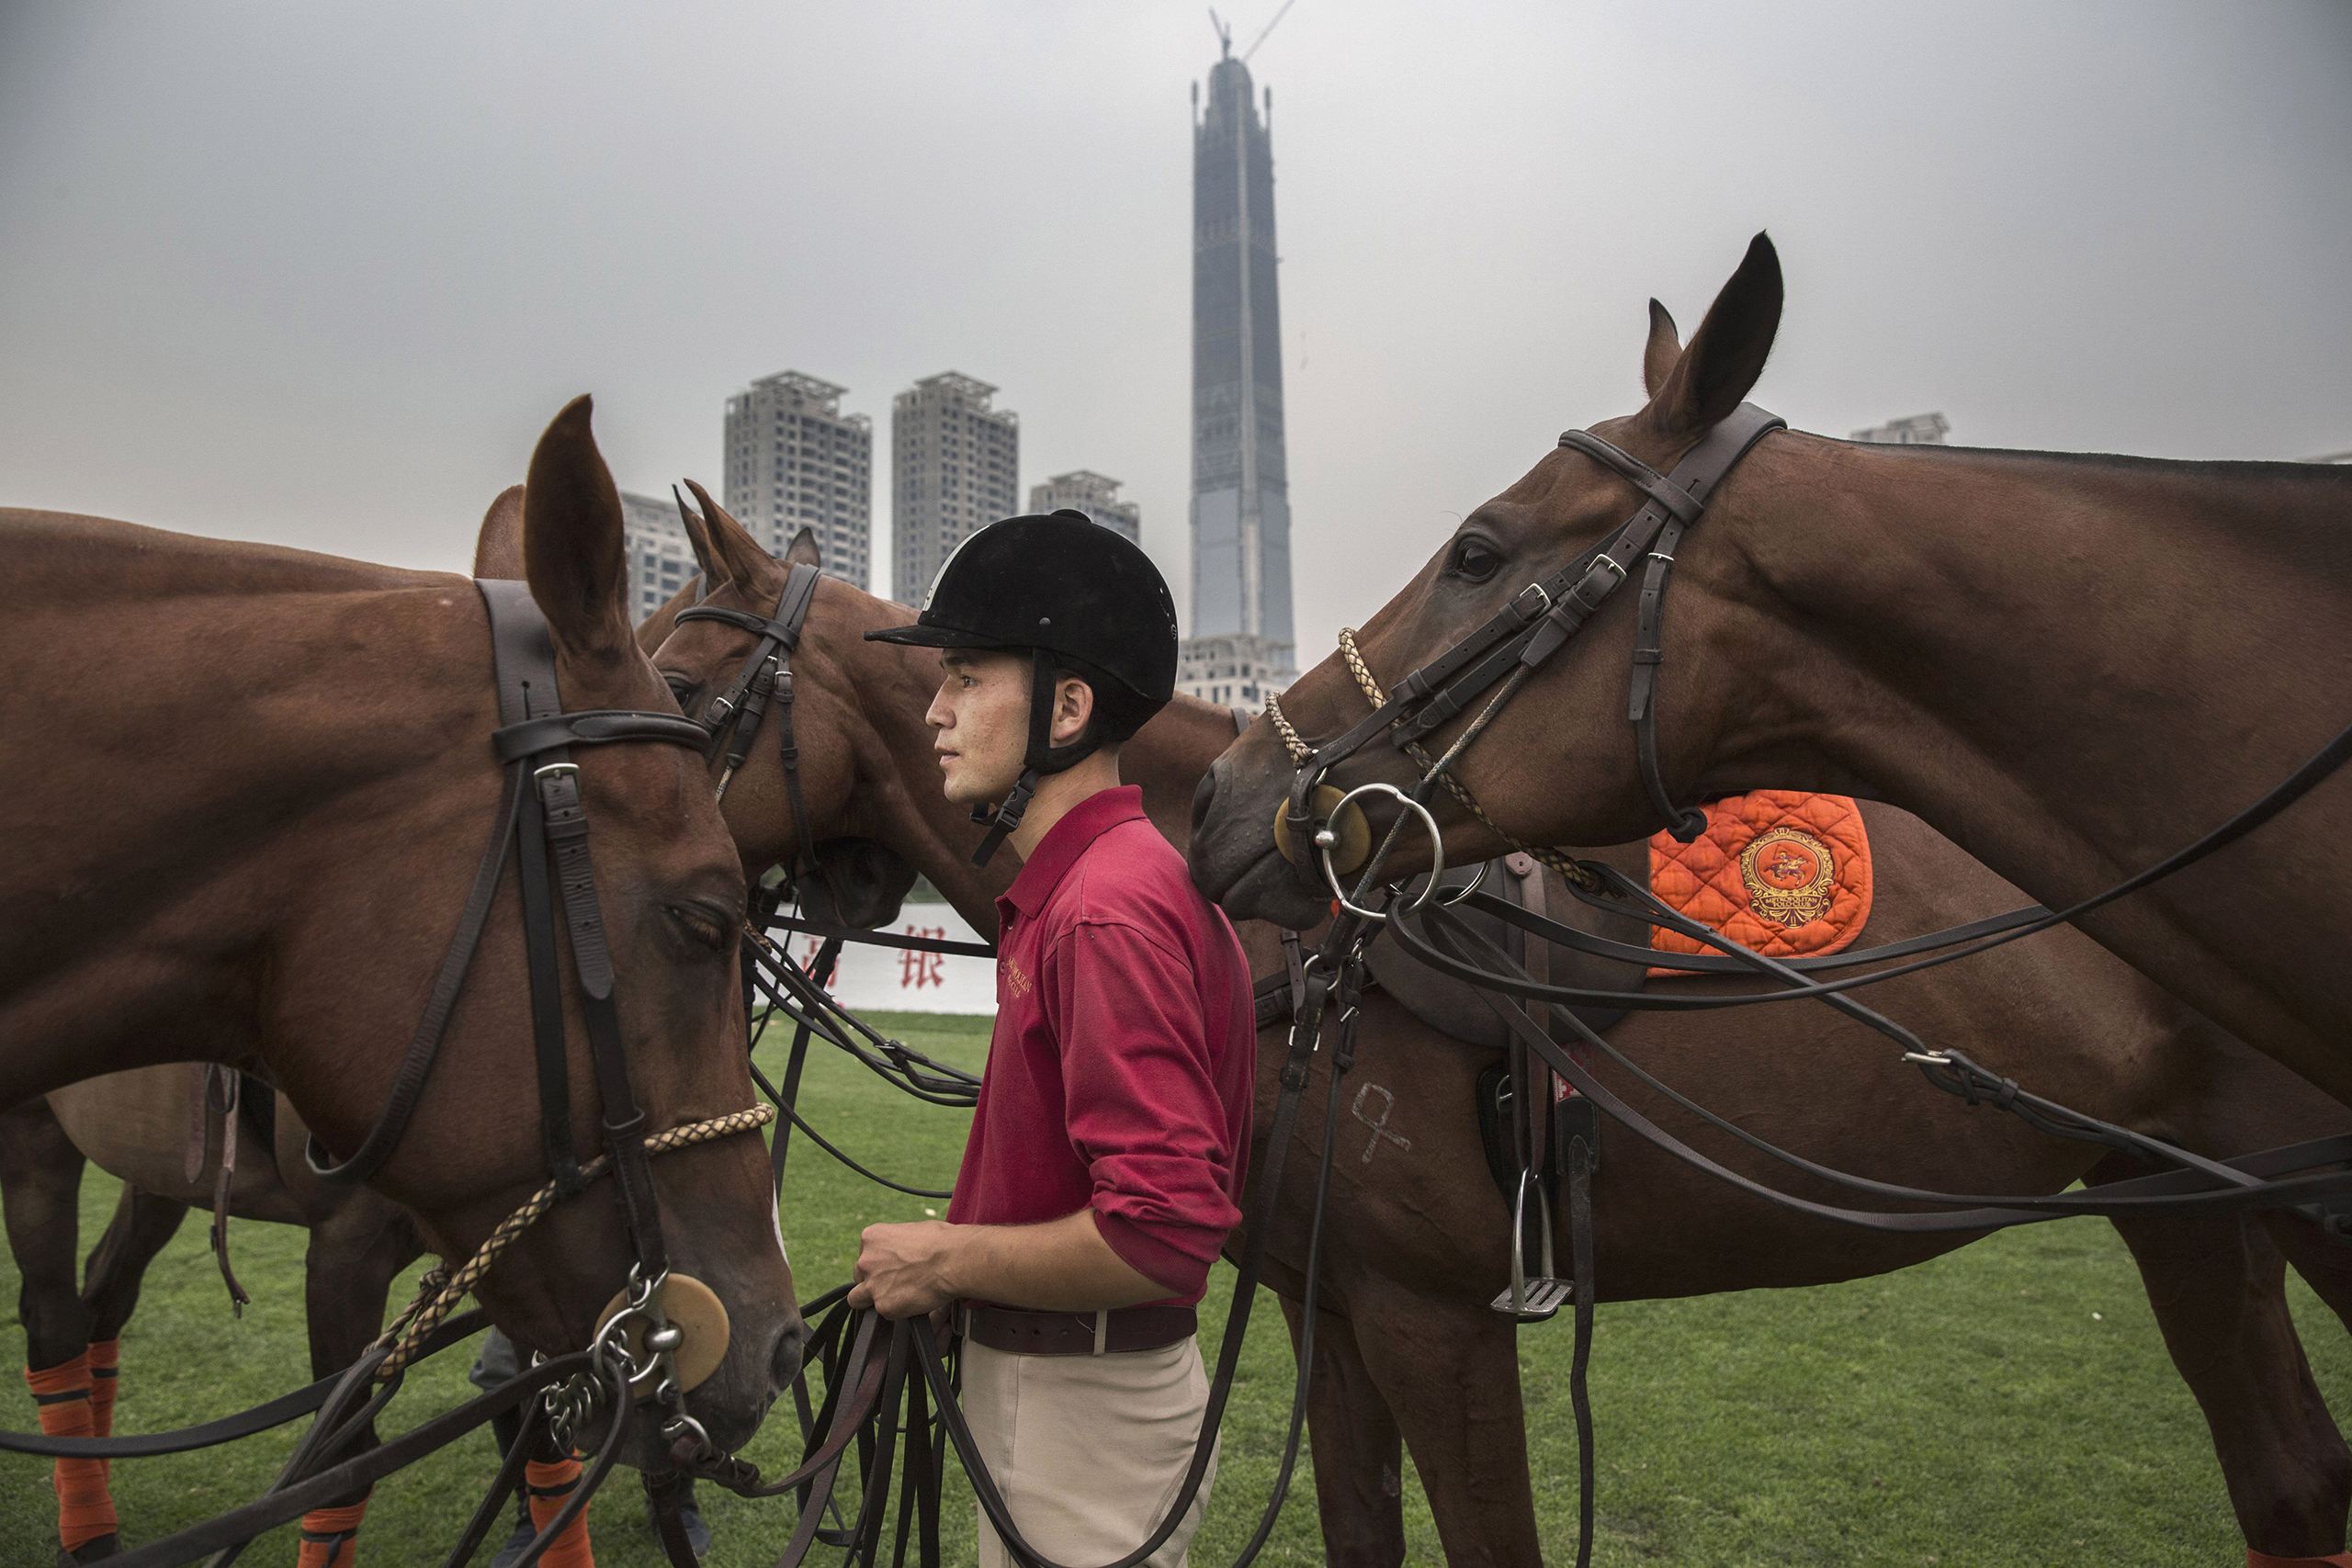 A horse trainer stands with polo horses during an intervarsity tournament match at the Tianjin Goldin Metropolitan Polo Club in Tianjin, China, on July 16, 2016.